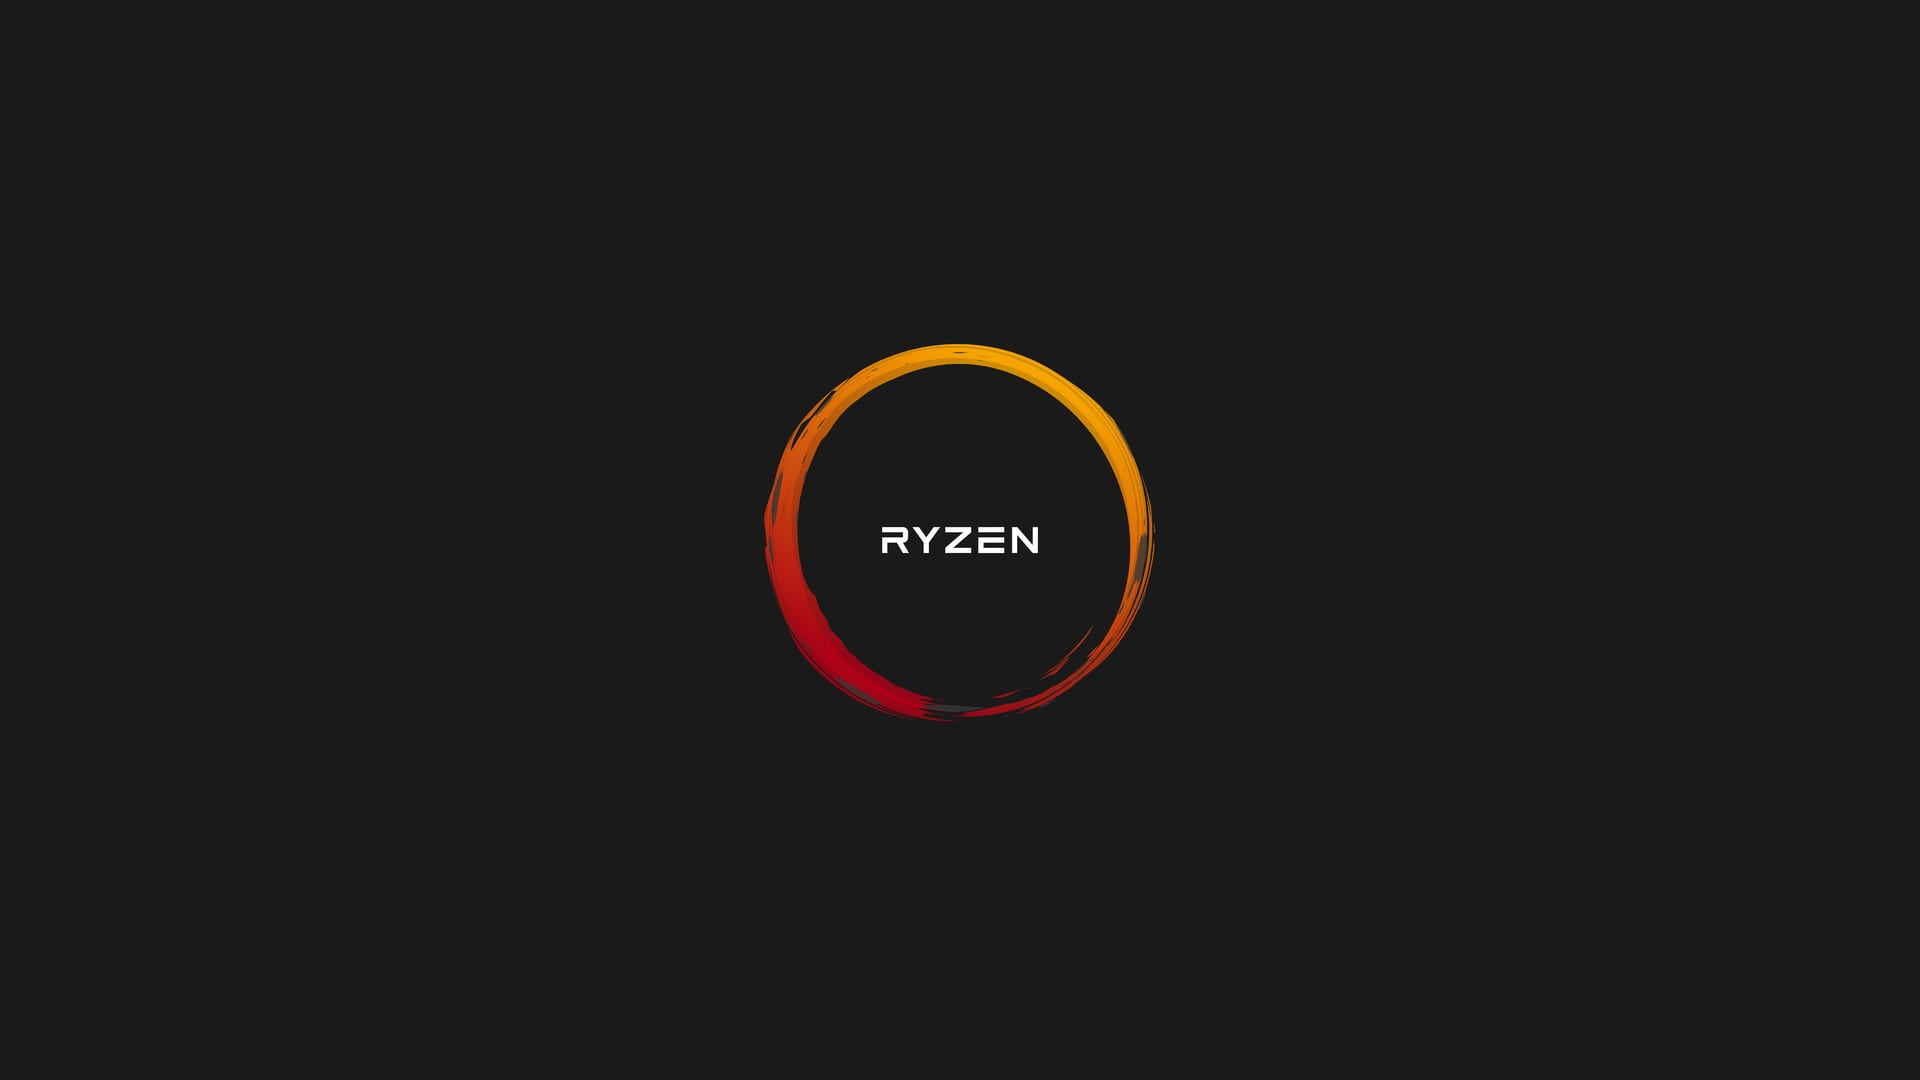 AMD Ryzen 3000 Will Support A320 and B350 Motherboards